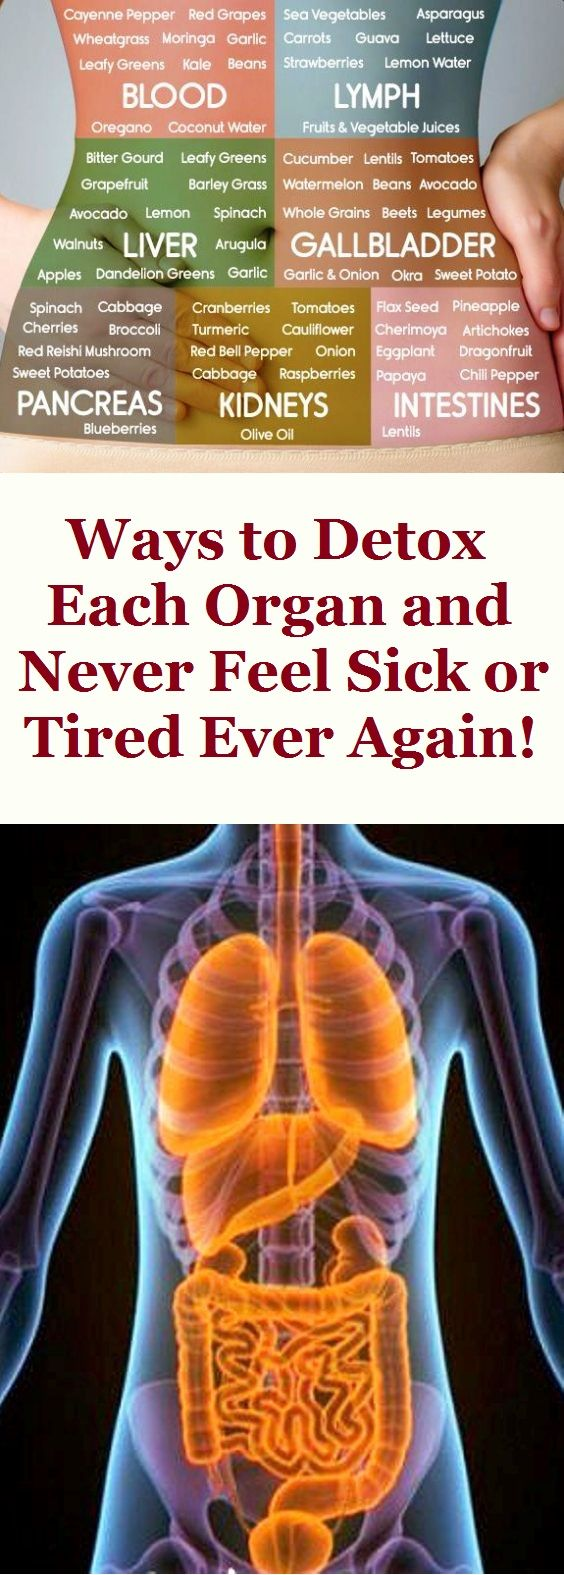 We are living in an age when we cannot avoid the presence of toxins. Toxins are everywhere, in the air we breathe, in the food we take, and in the water we drink. All these heavy metals enter our bodies, and no matter how hard our detoxifying organs try to remove them they still remain in our bodies as there are plenty of them.